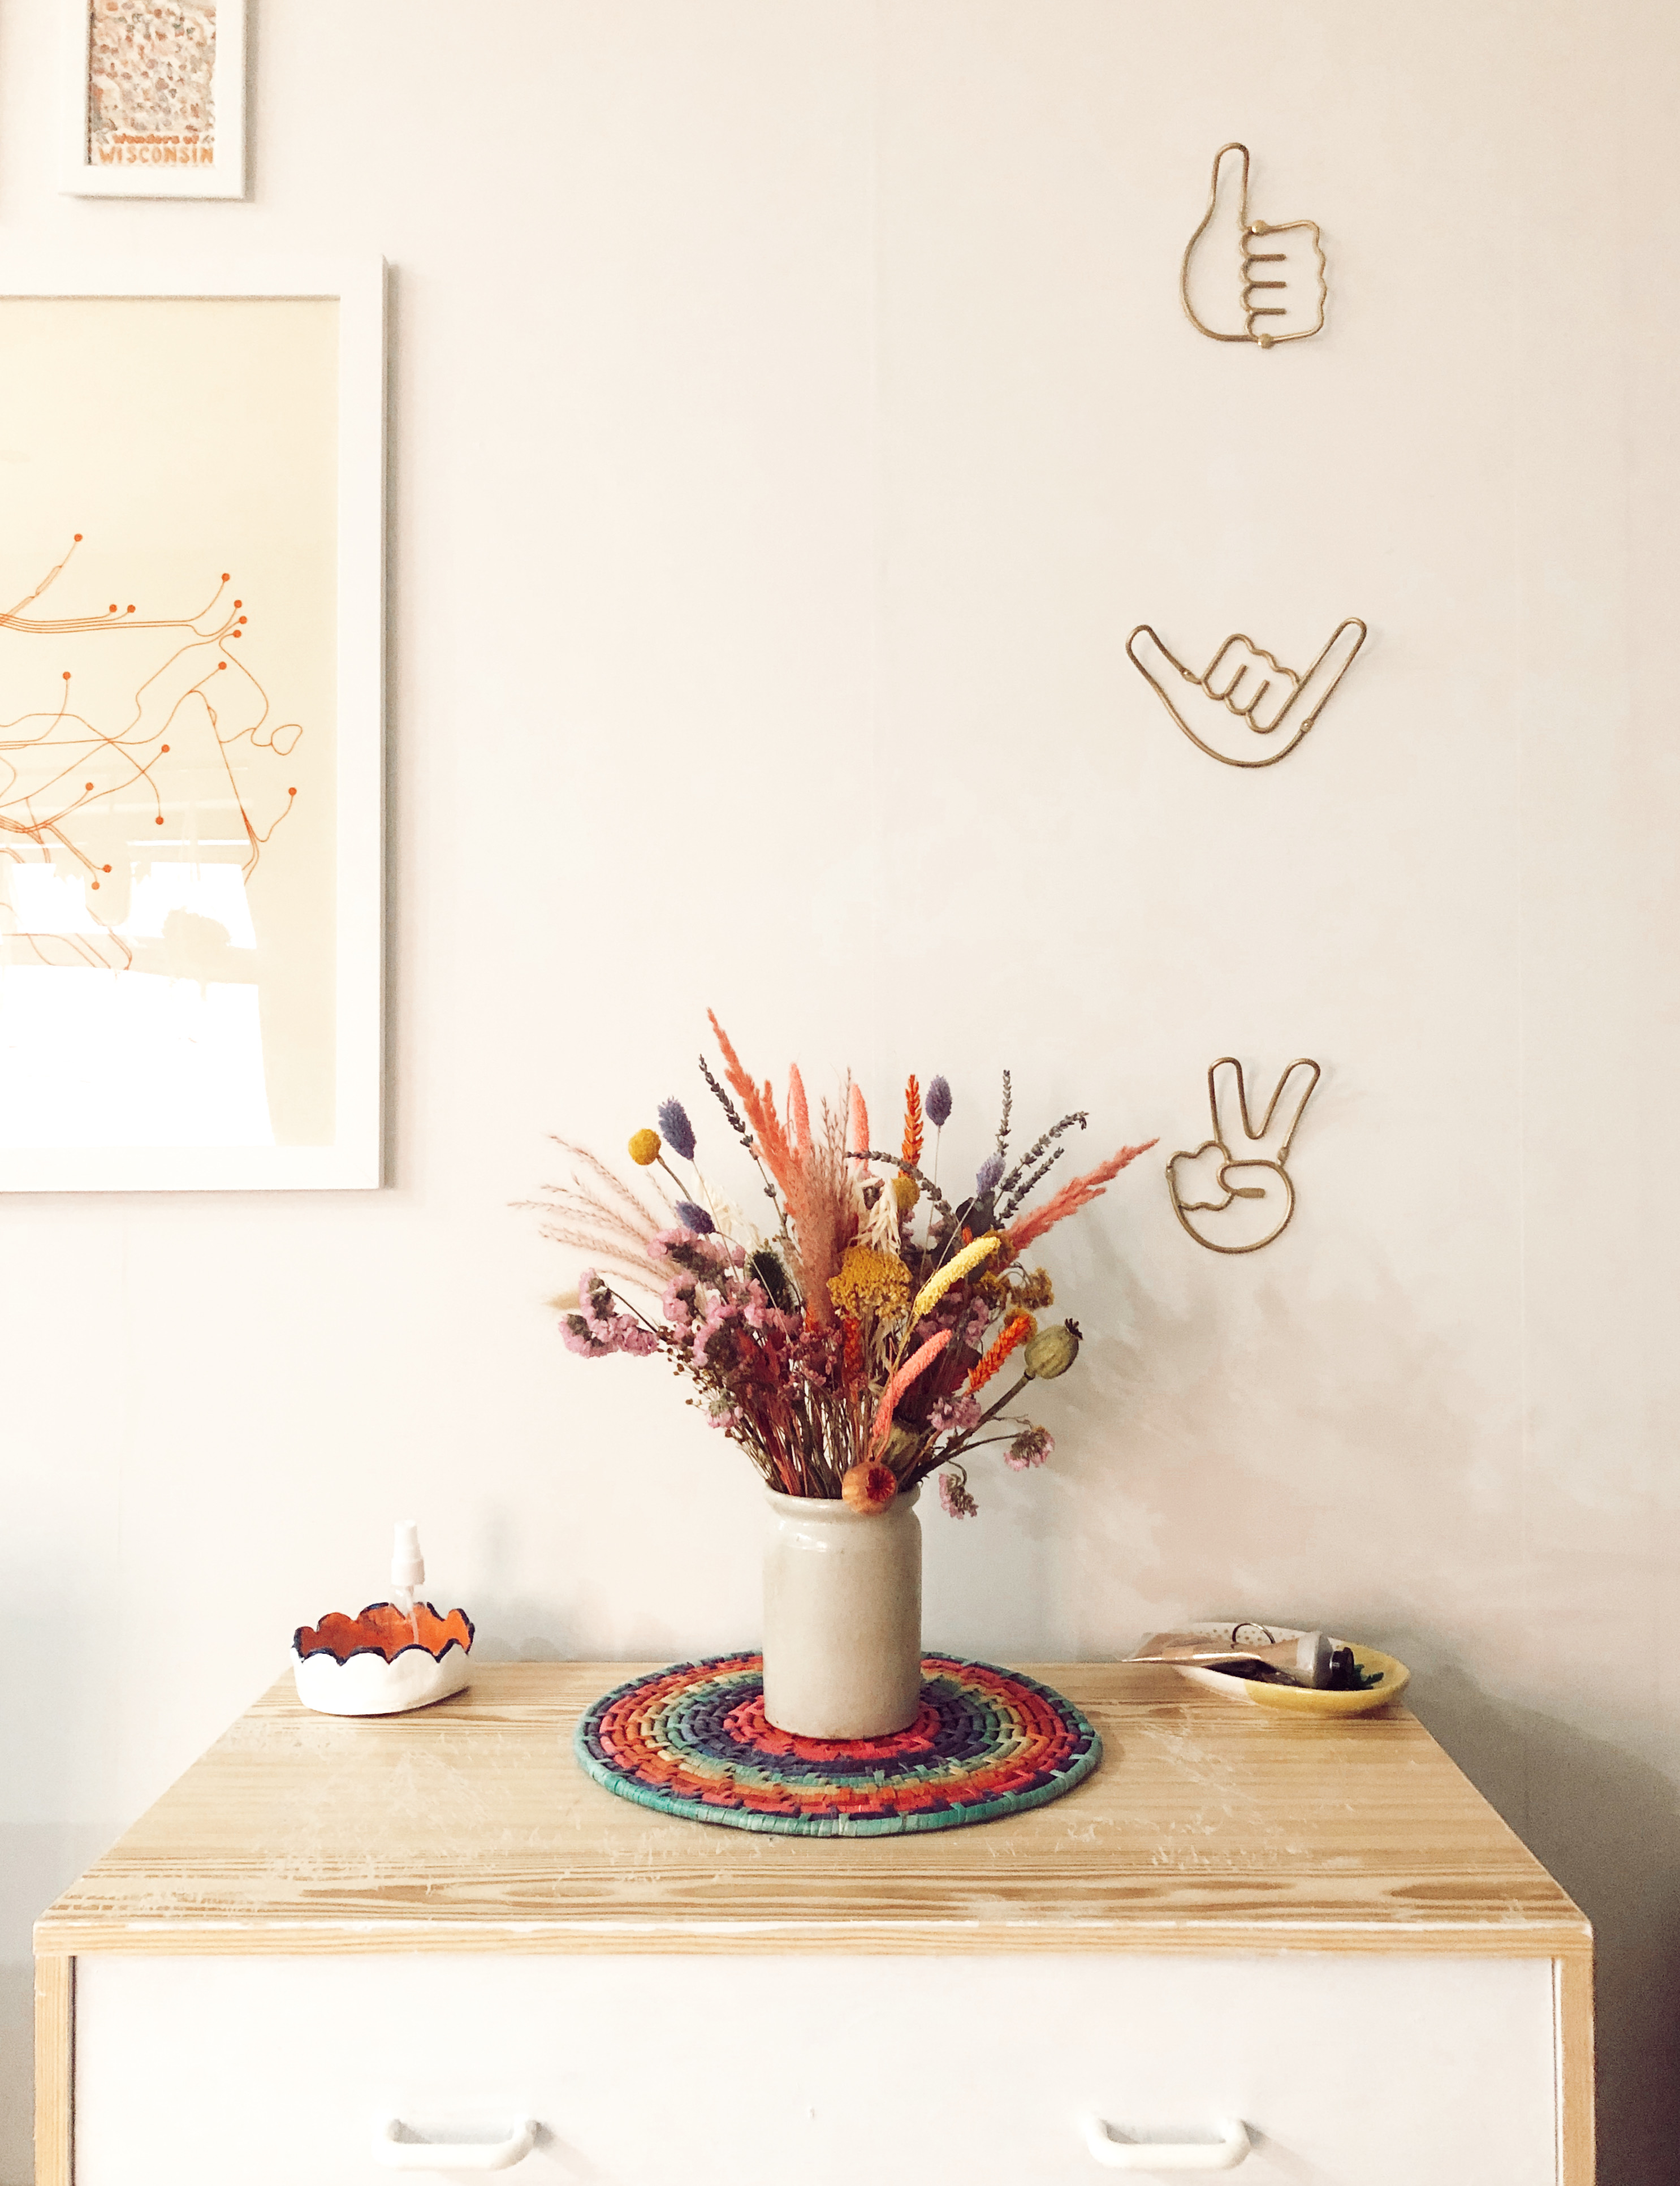 bouquet of colourful dried flowers on top of light wooden cabinet against white wall with prints and gold hand shaped hooks